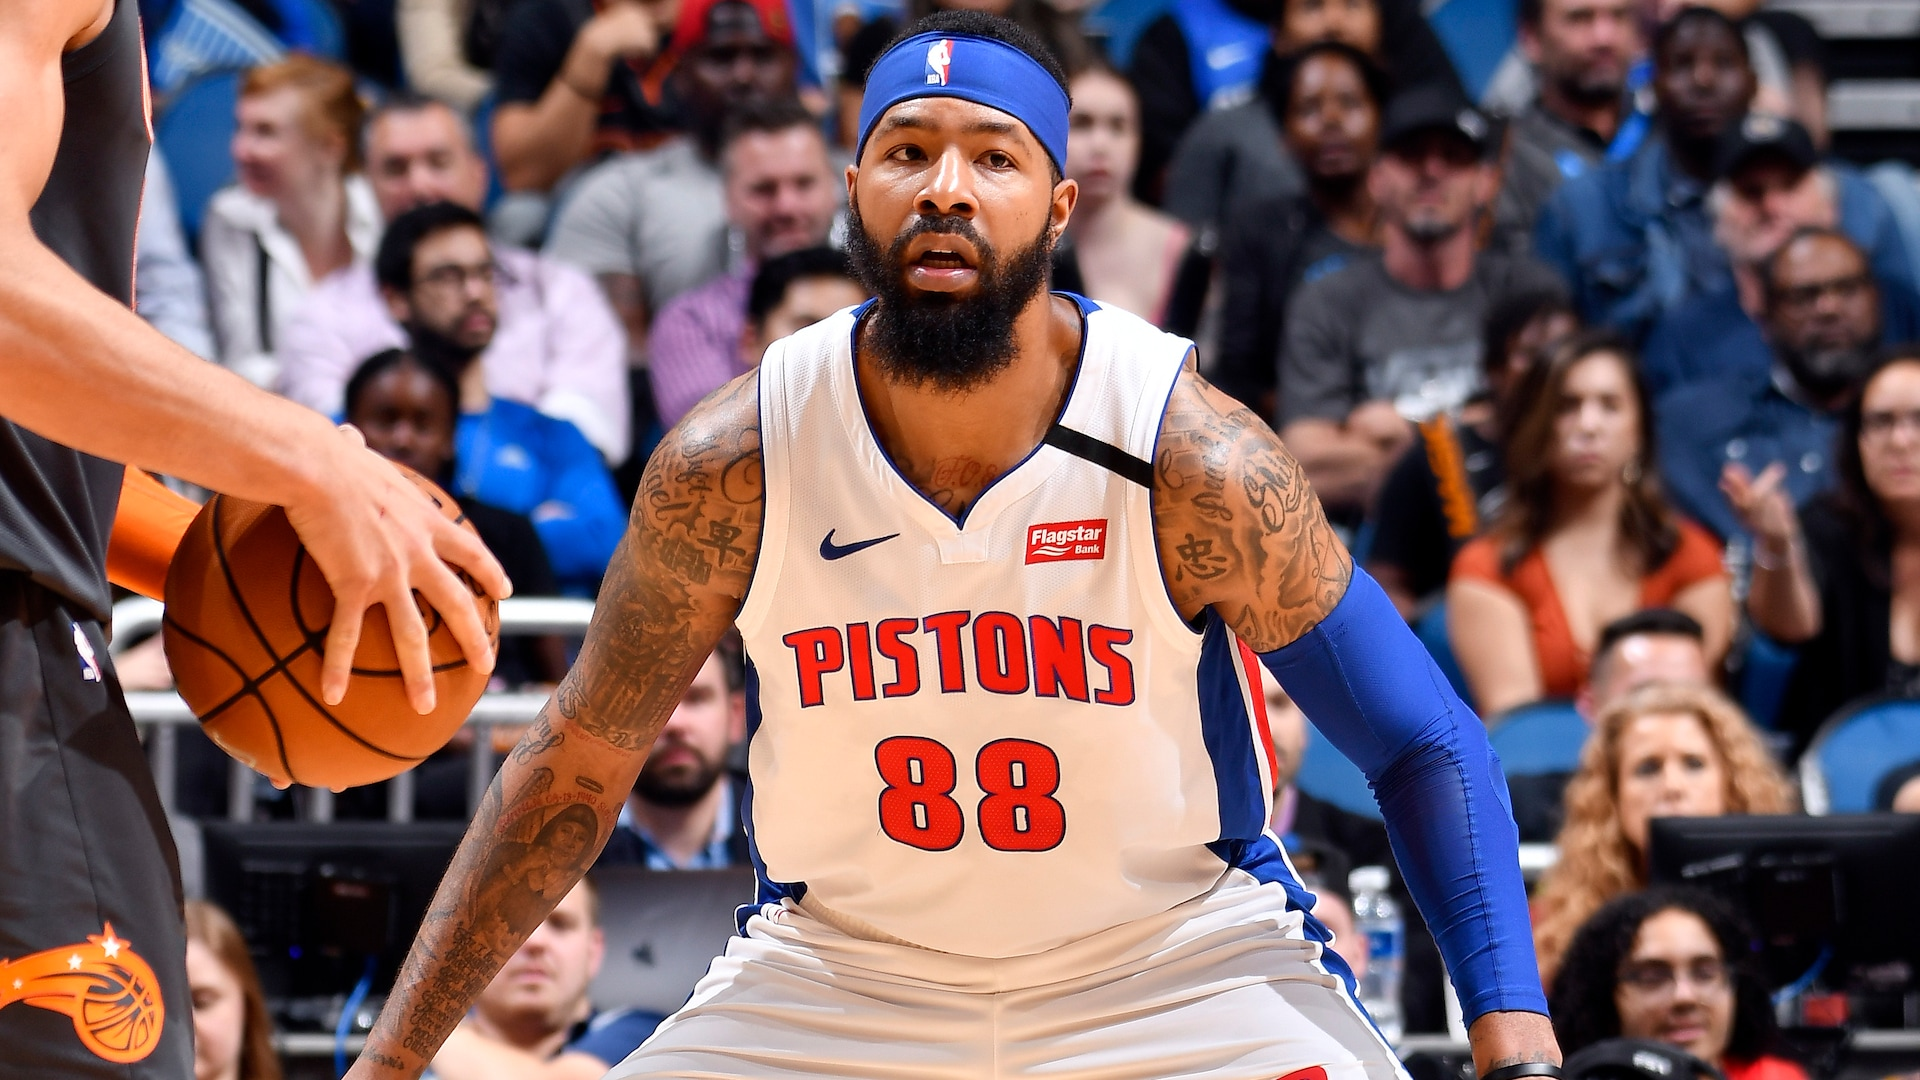 Reports: Lakers to sign Markieff Morris, waive DeMarcus Cousins